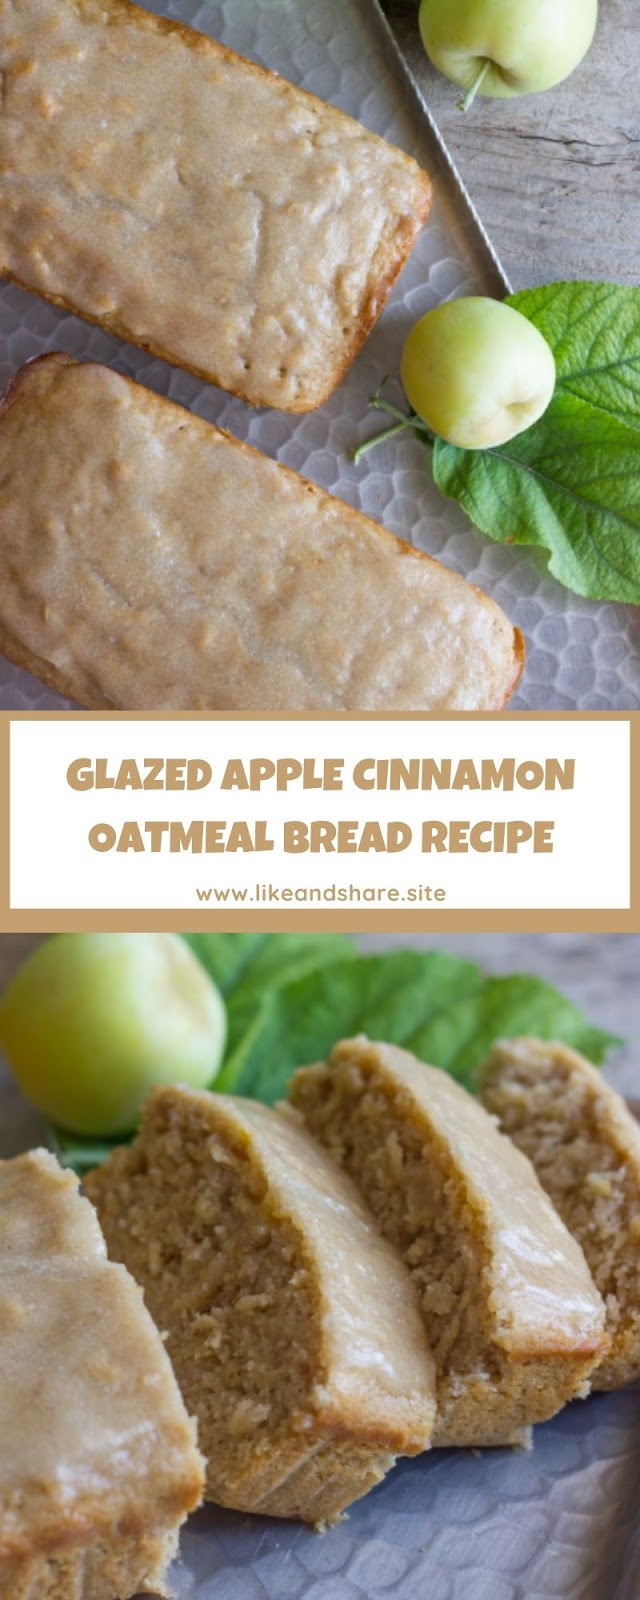 GLAZED APPLE CINNAMON OATMEAL BREAD RECIPE